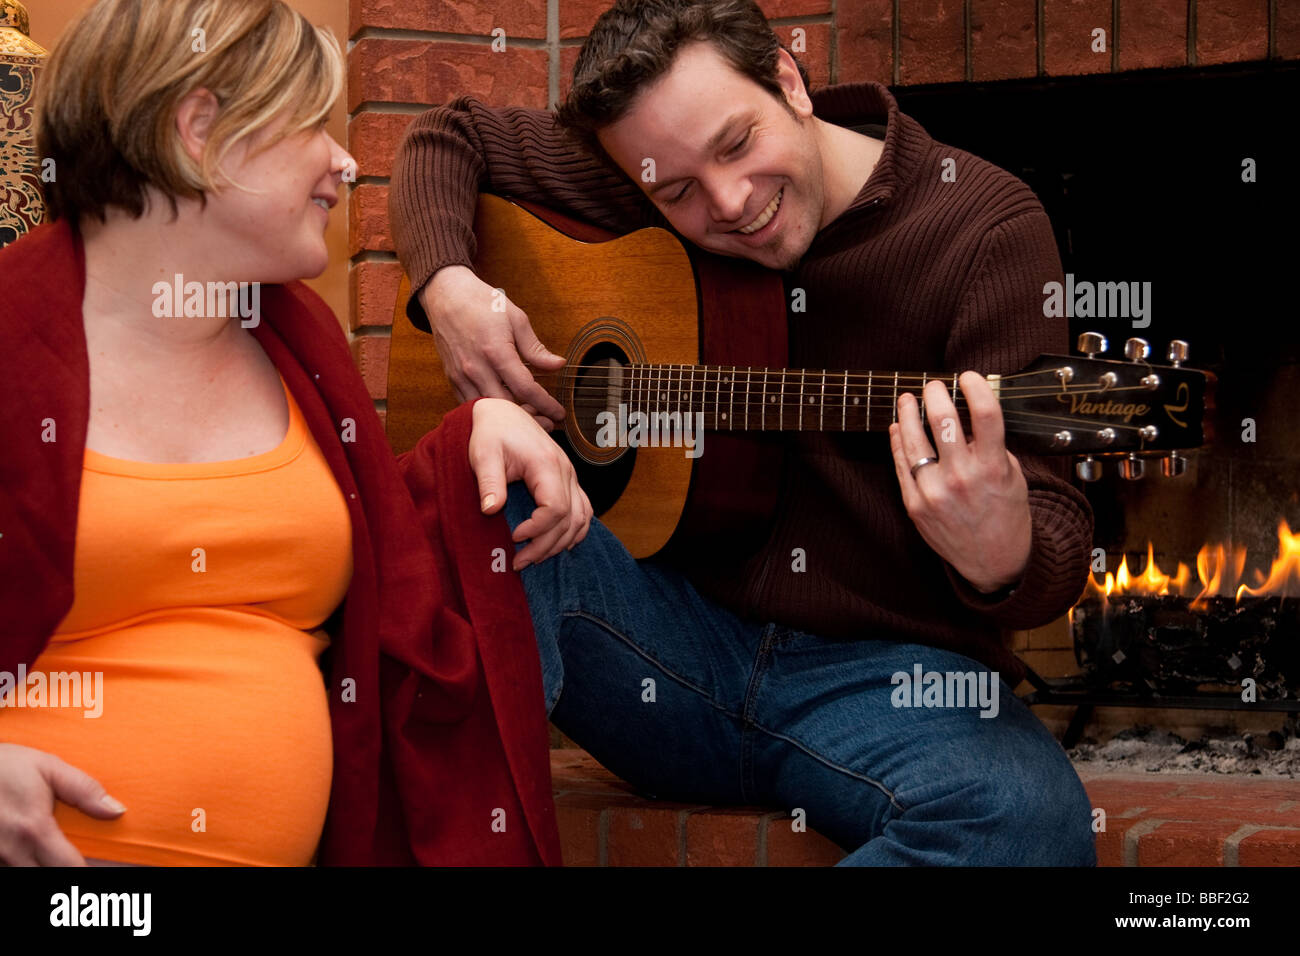 A happy father plays the guitar for his pregnant wife - Stock Image